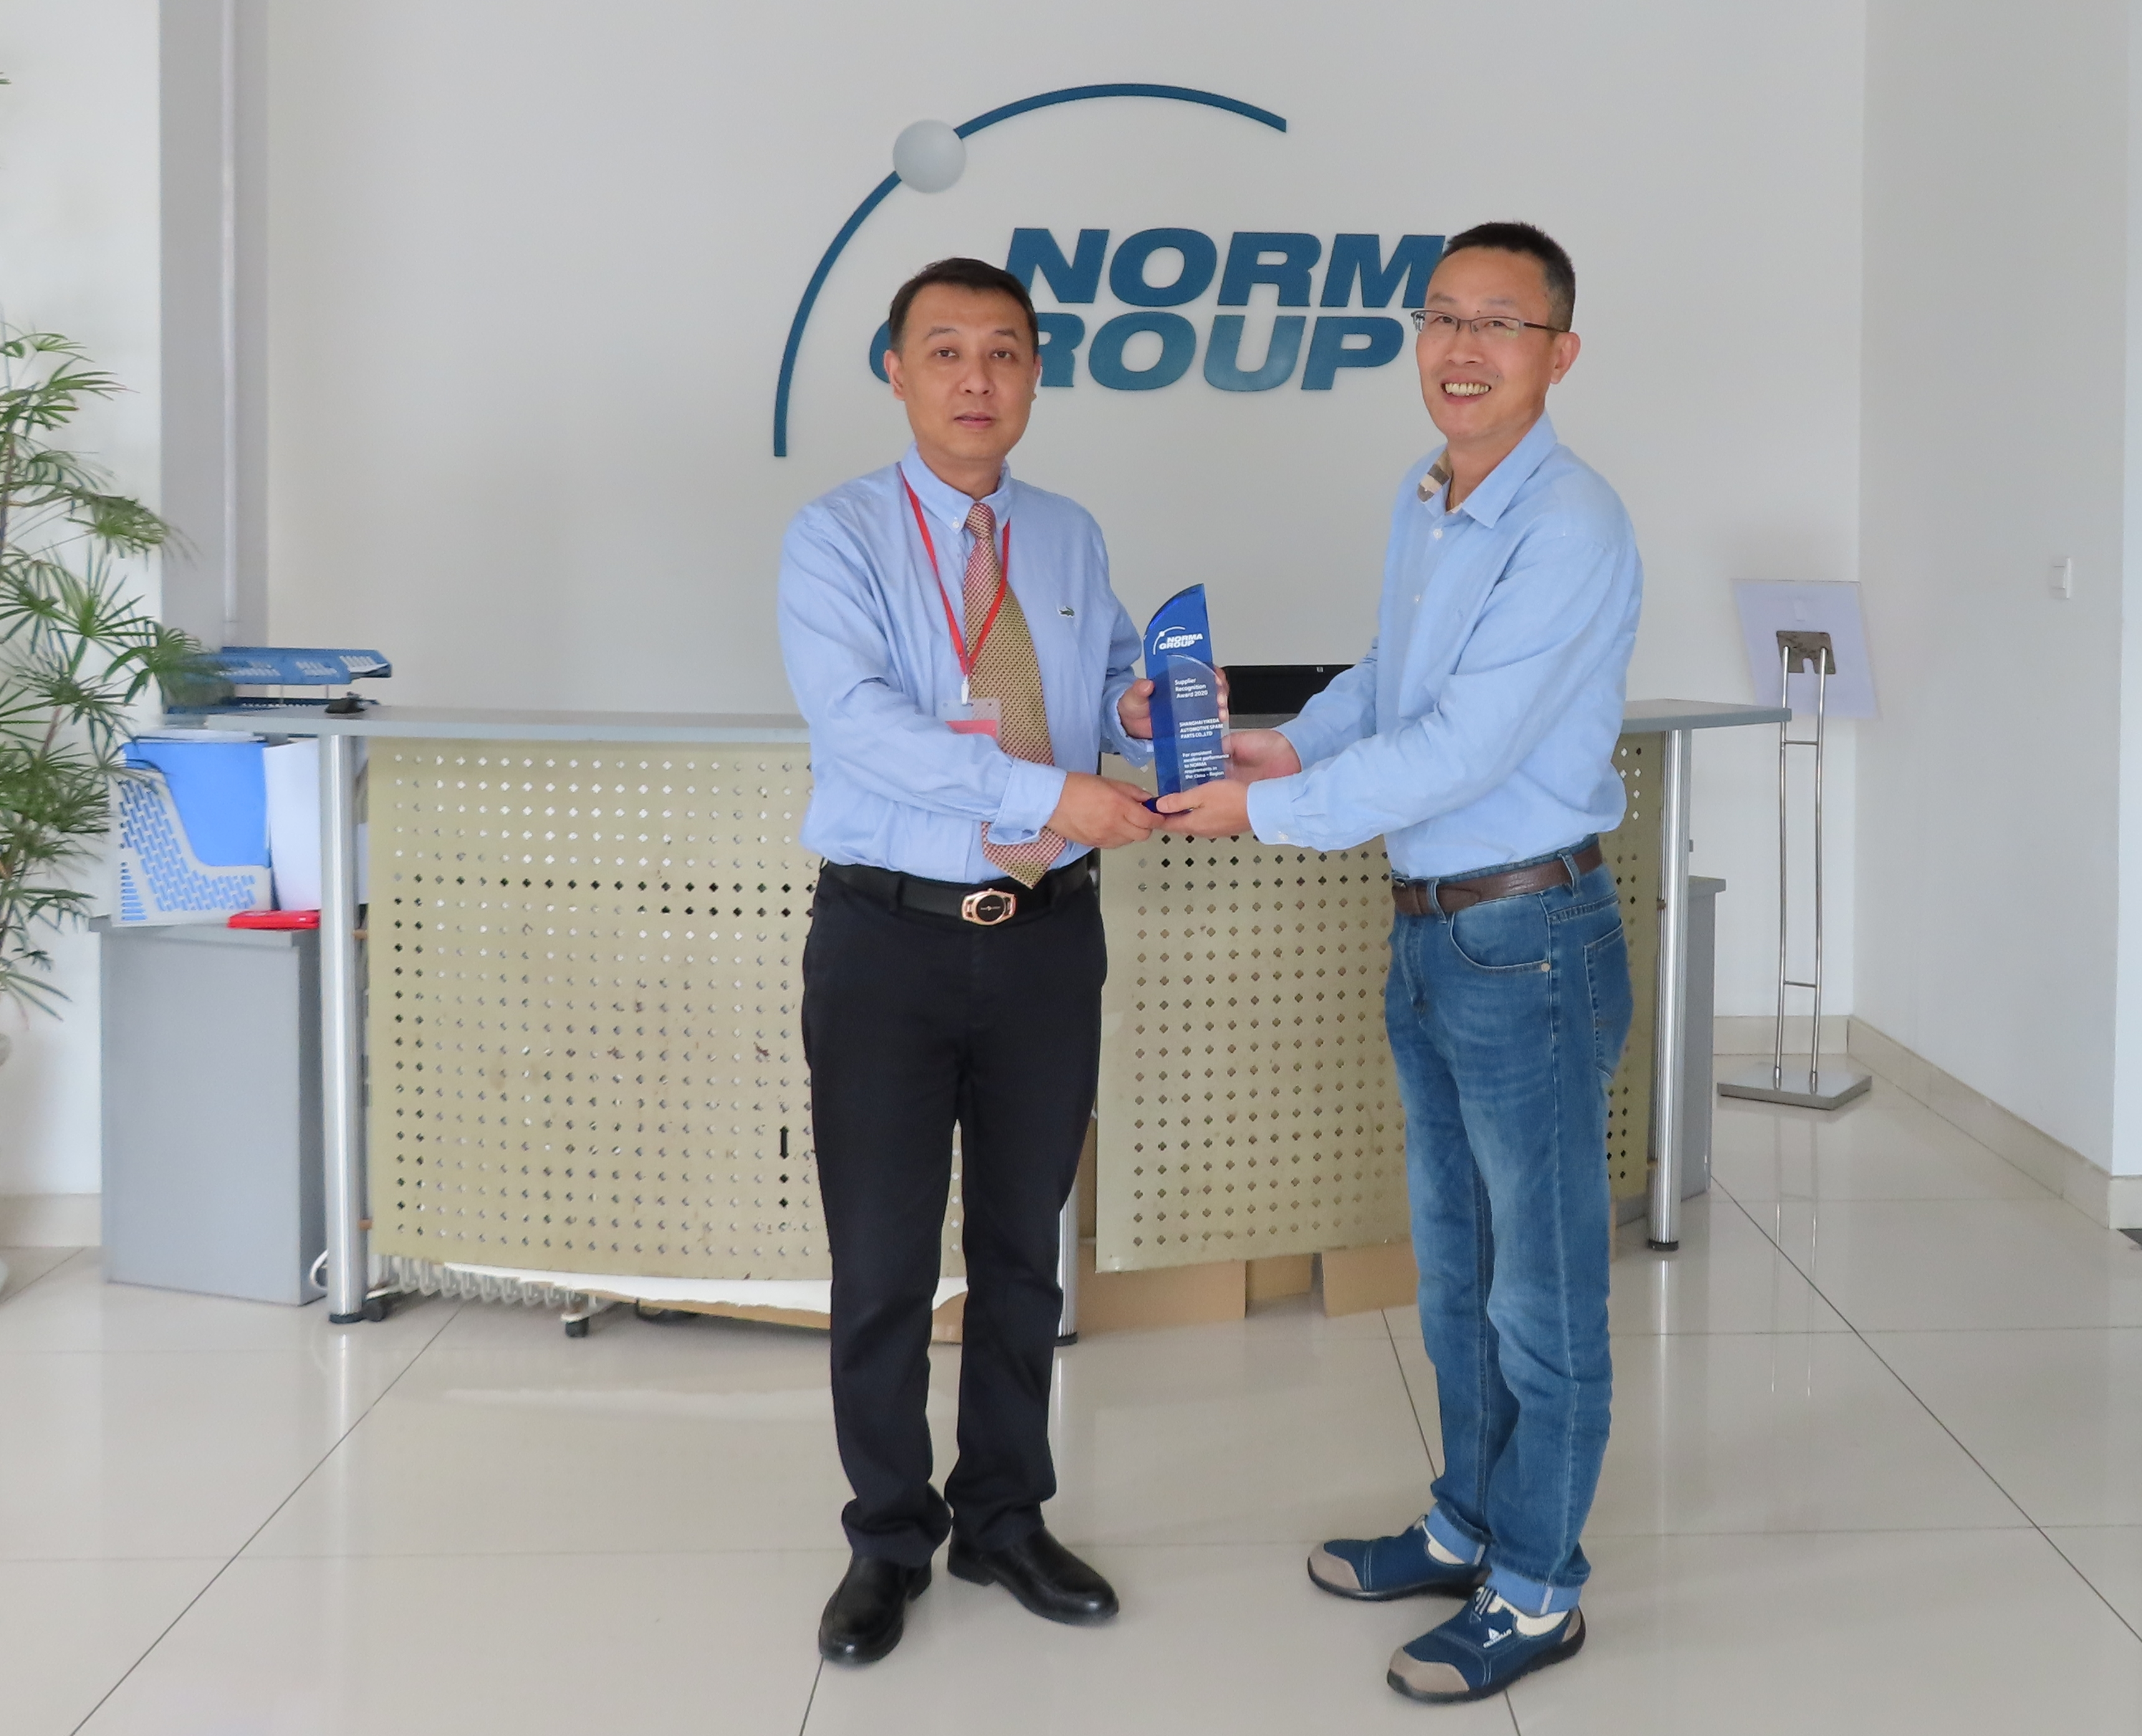 Bruno Shi (right), General Manager of NORMA Group in China, presents the Supplier Recognition Award to Haiben Chen (left), General Manager of Yikeda.